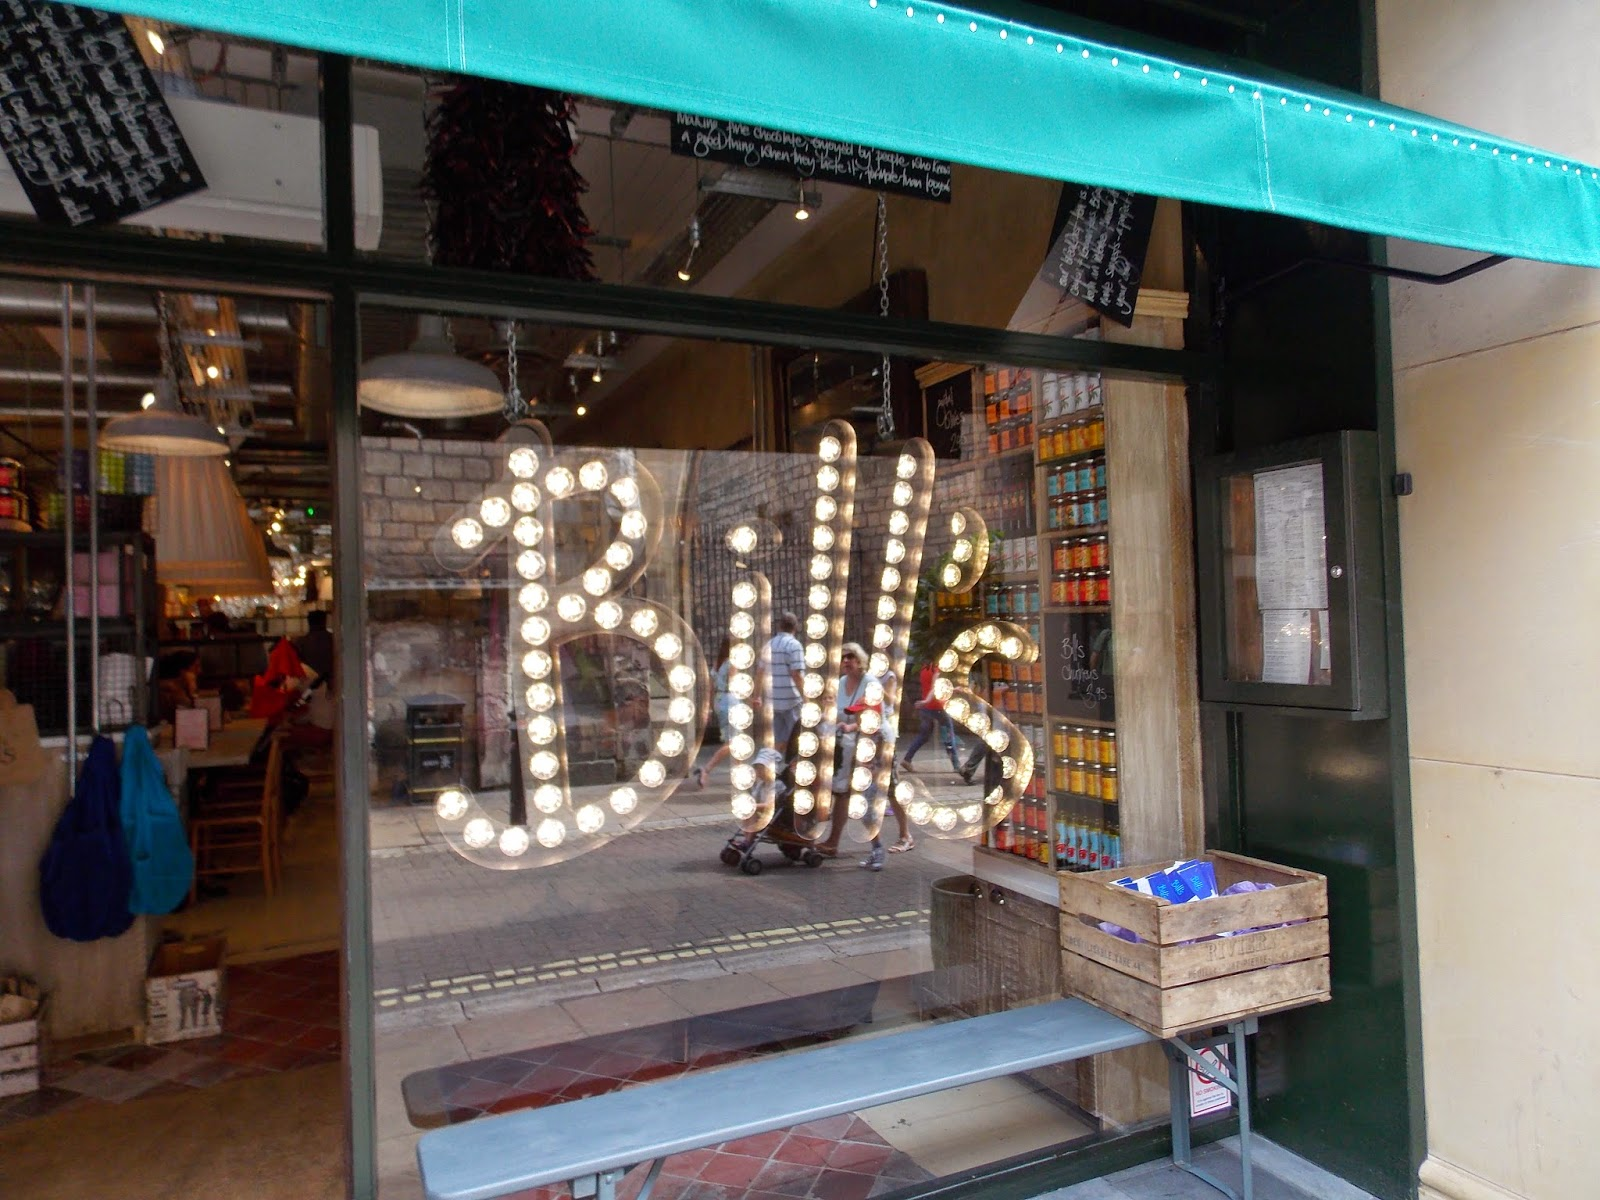 Bill's Restaurant, Coney Street, York